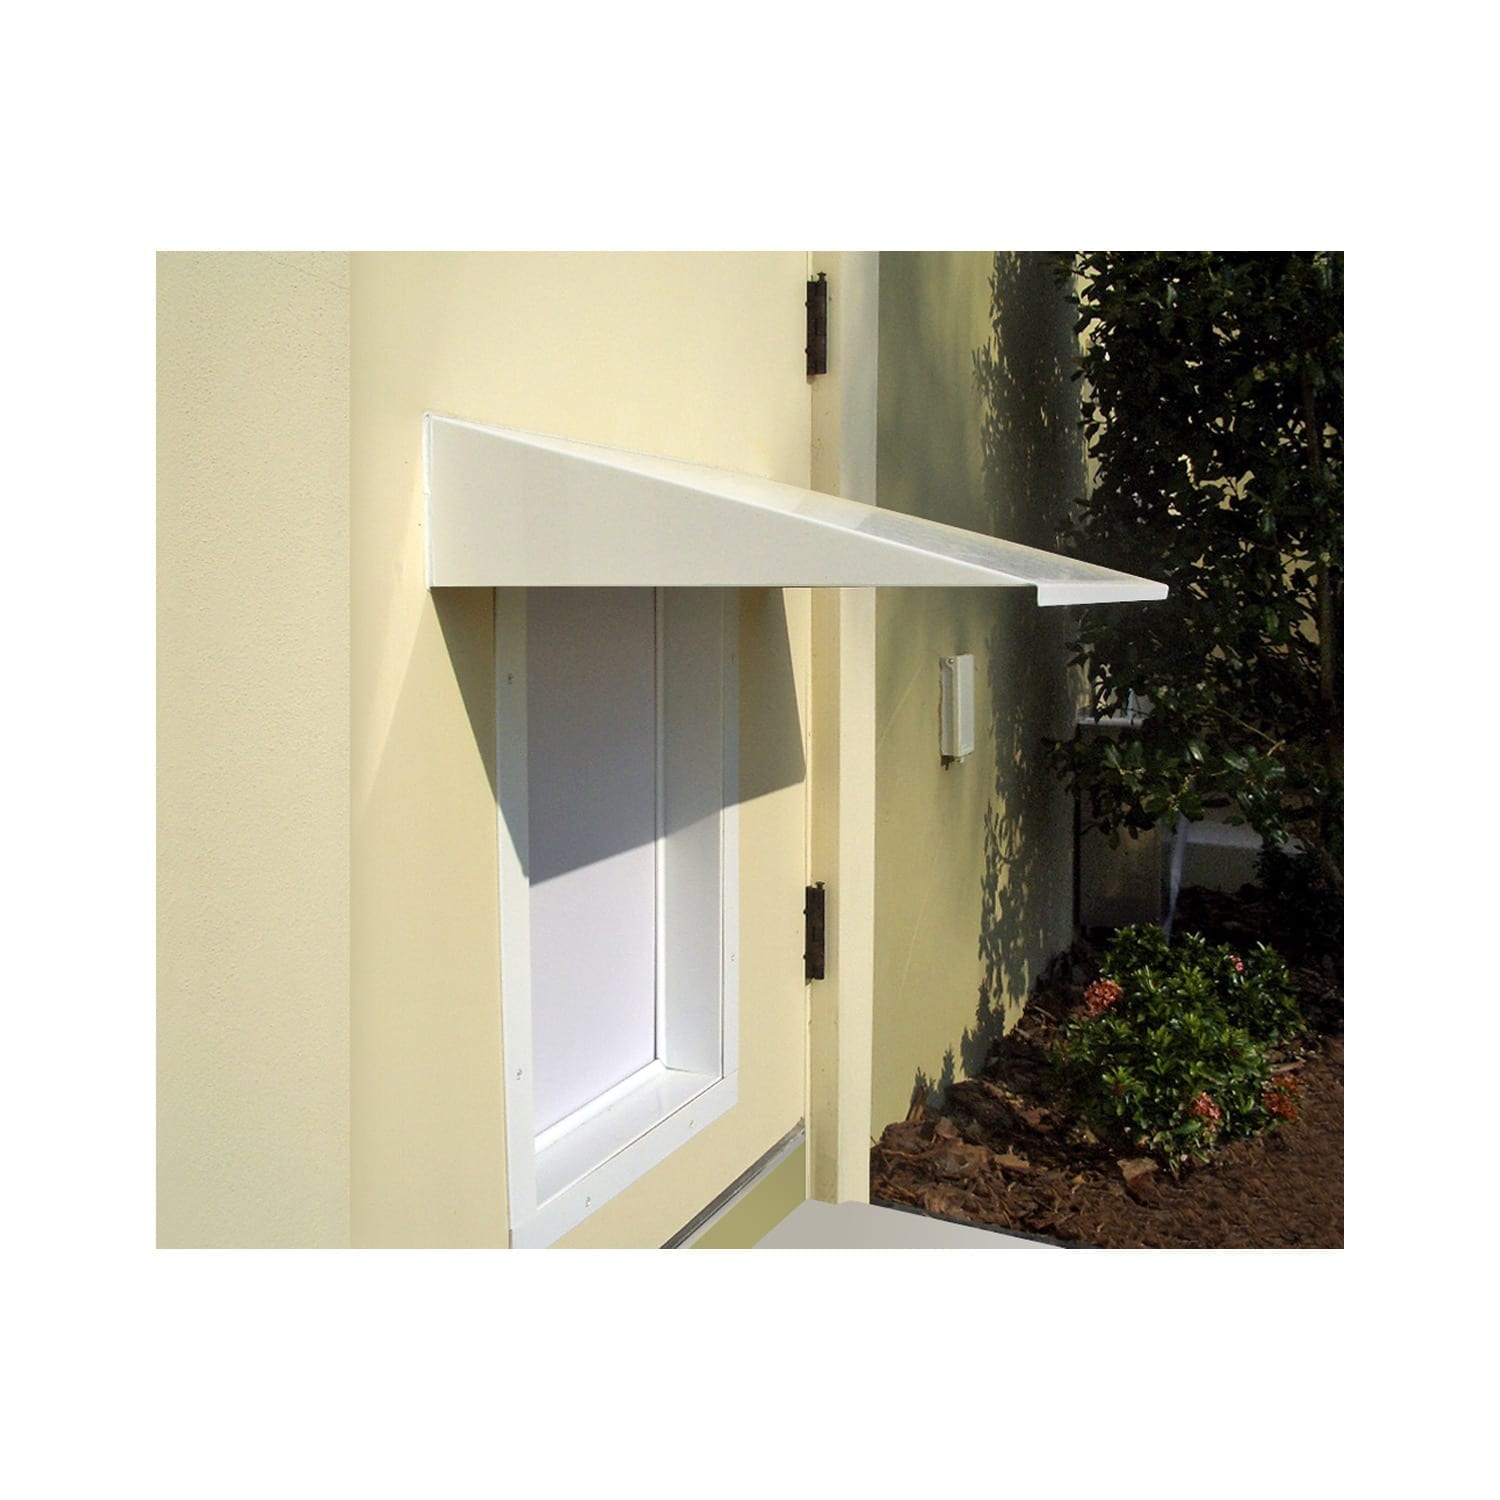 PlexiDor Dog Door Awning in white attached to structure